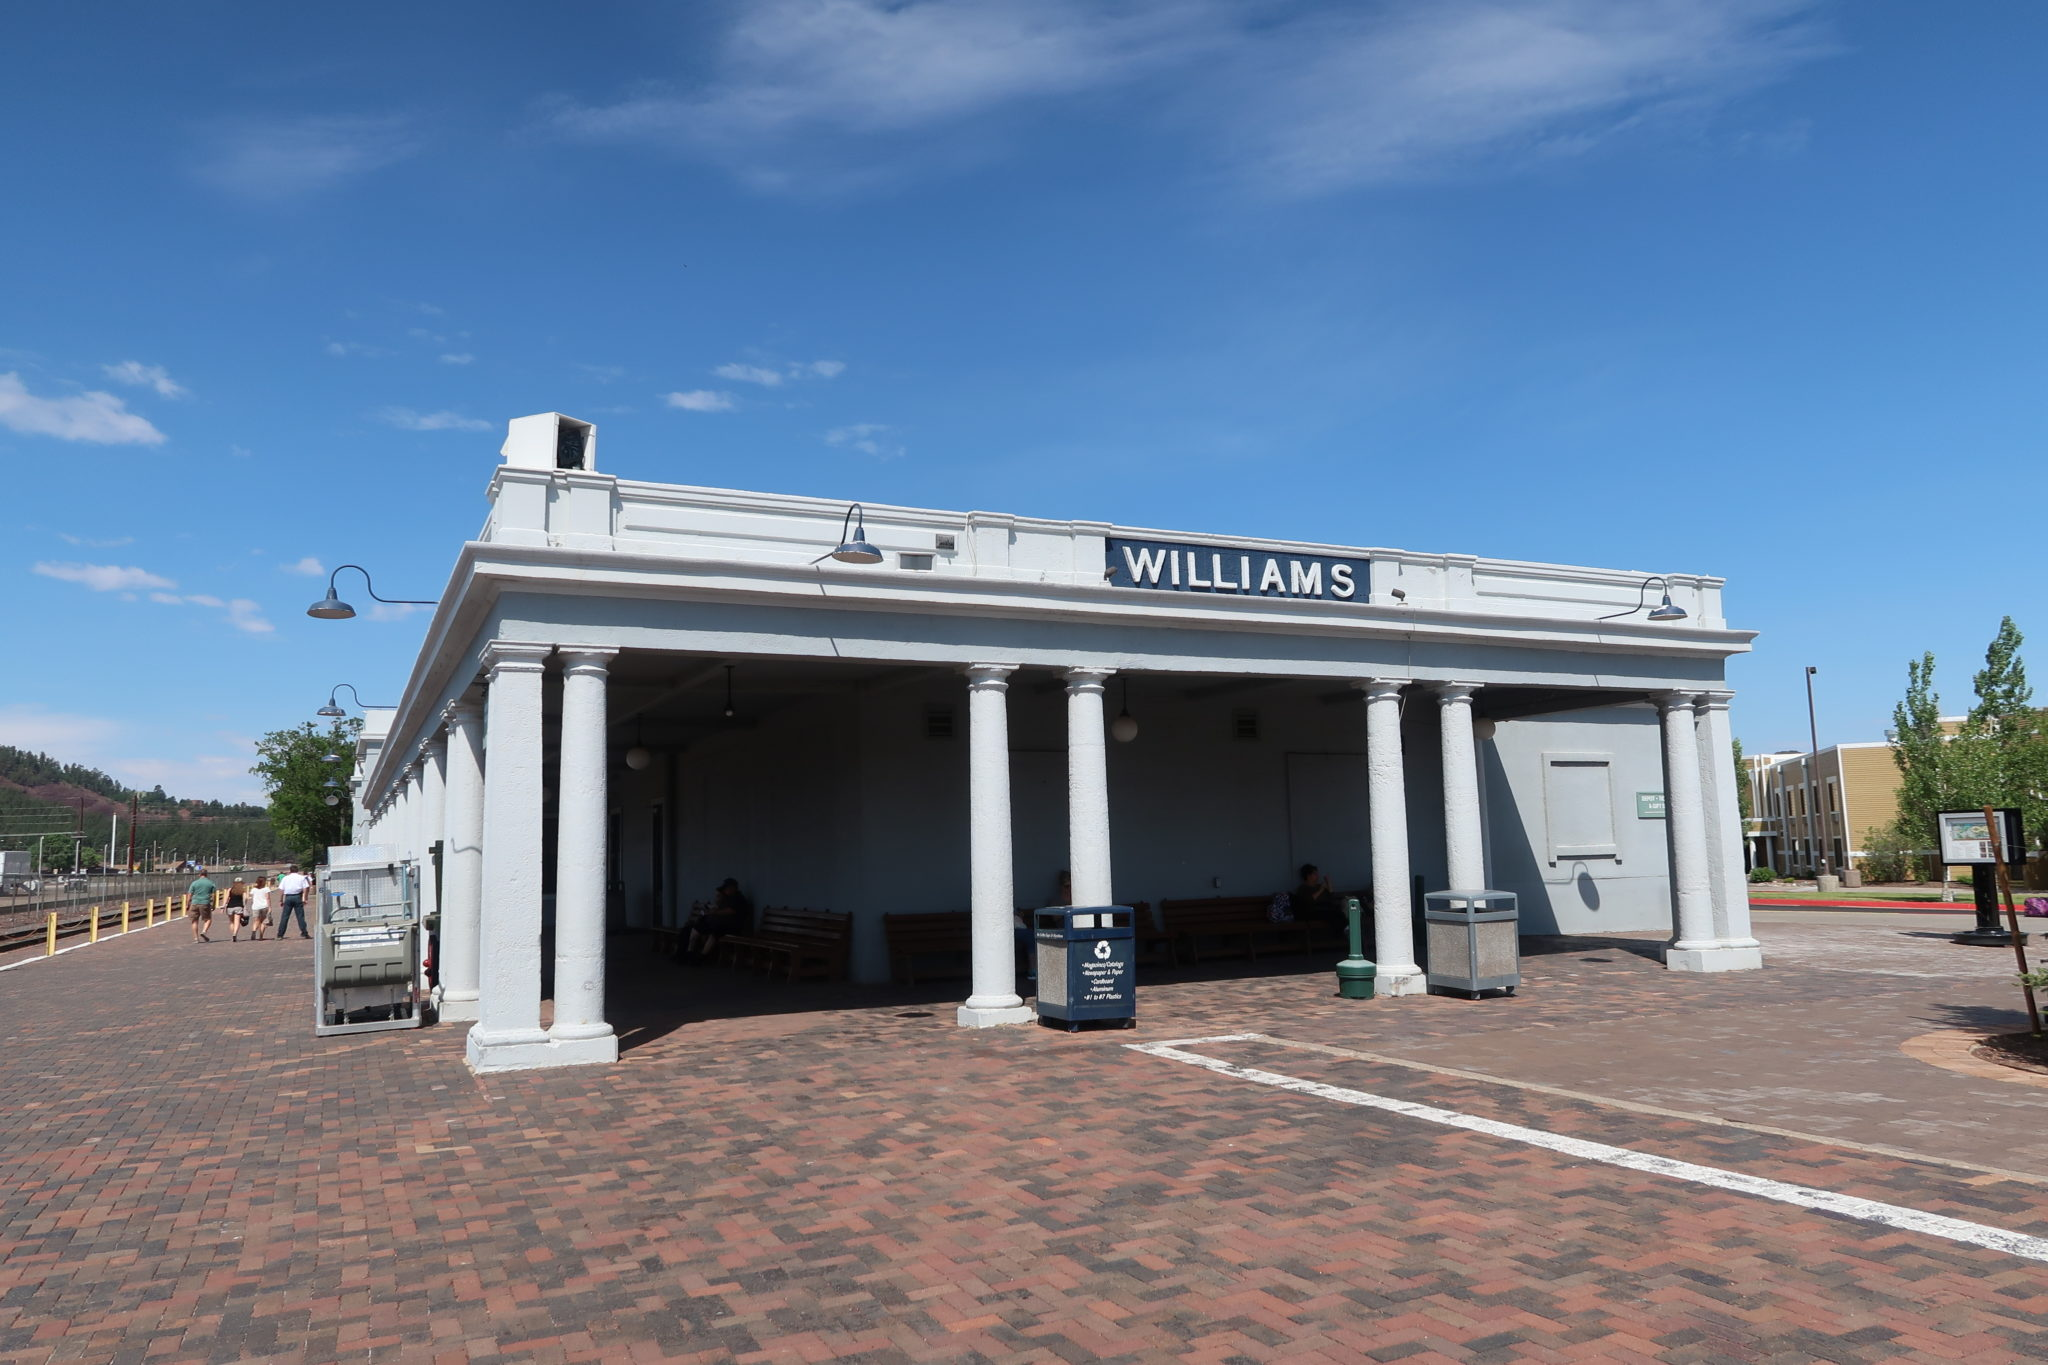 gare-williams-route-66-ouest-americain